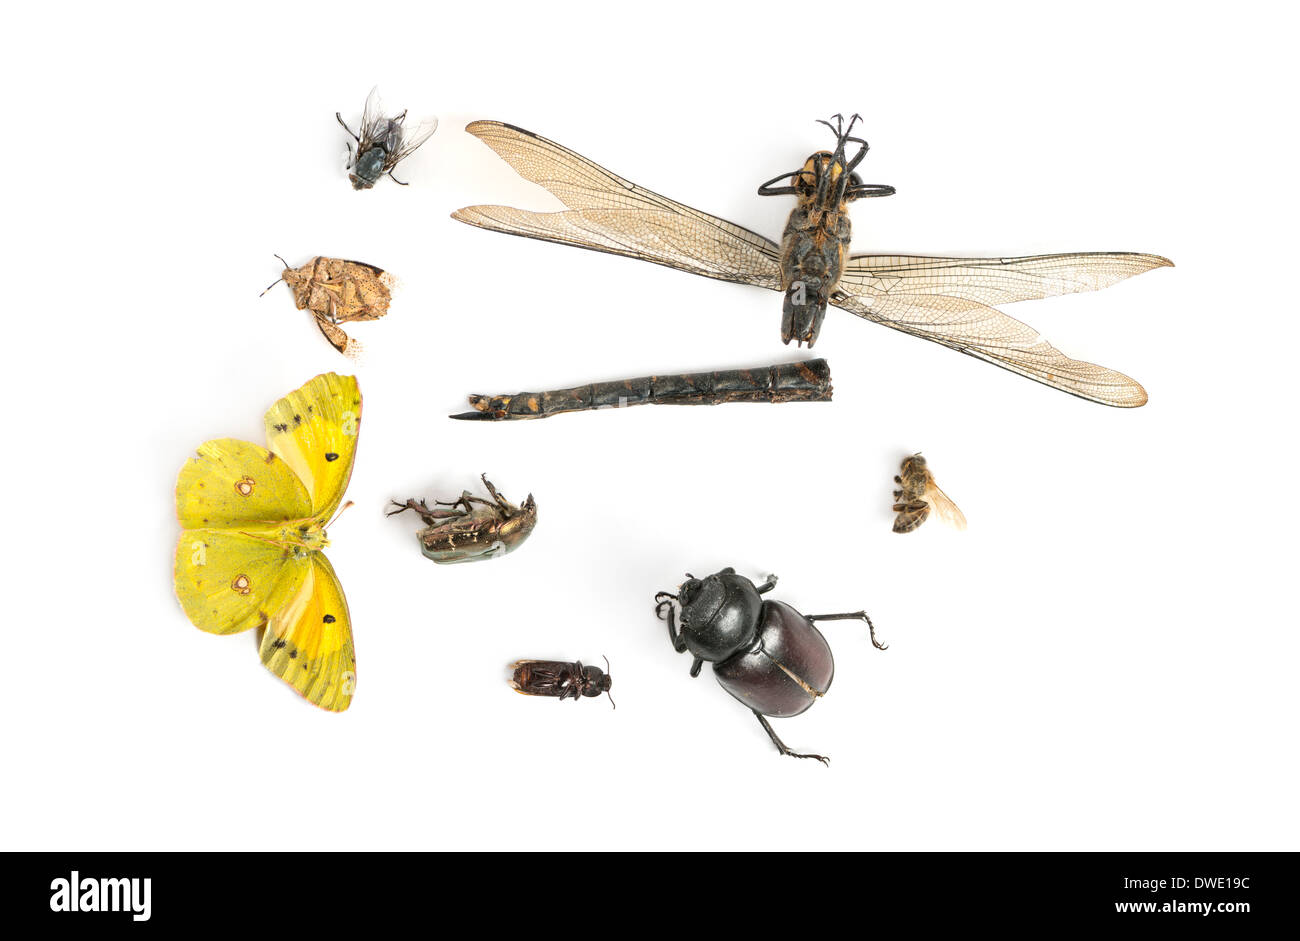 Composition with dead insects in front of white background - Stock Image